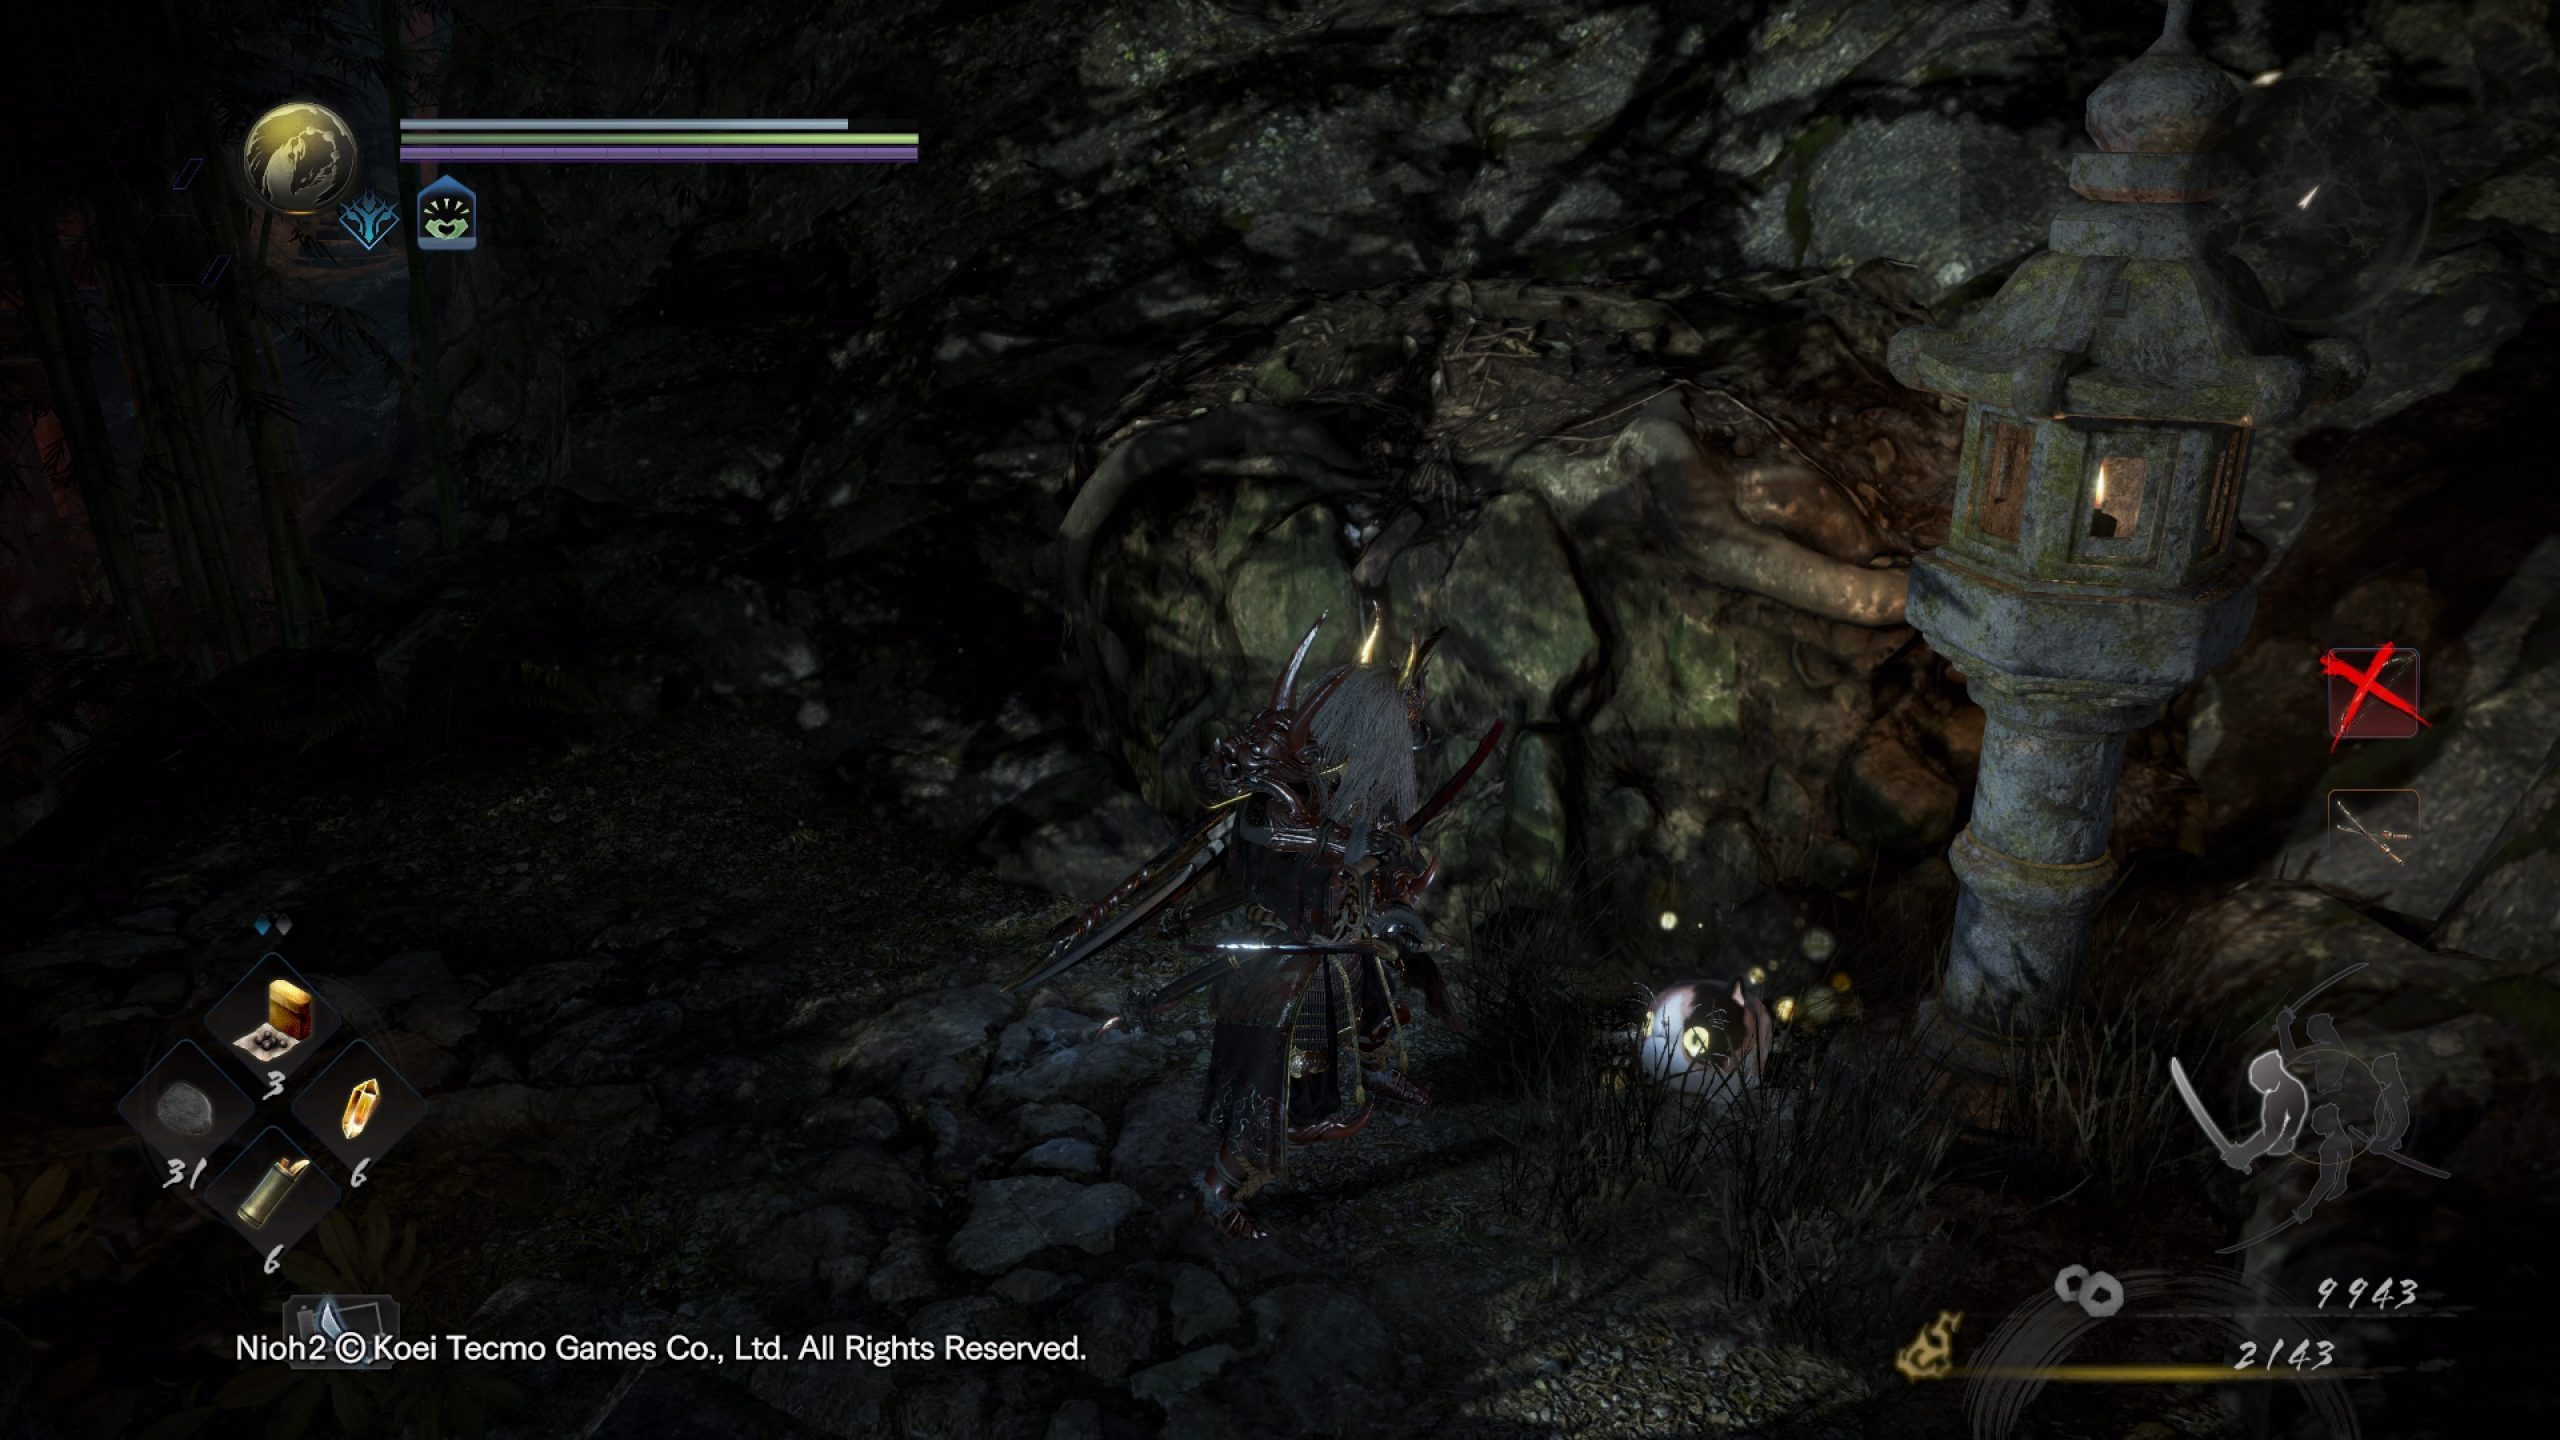 Nioh-2-Remastered-The-Complete-Edition_20210207182054-scaled Mon avis sur Nioh Collection